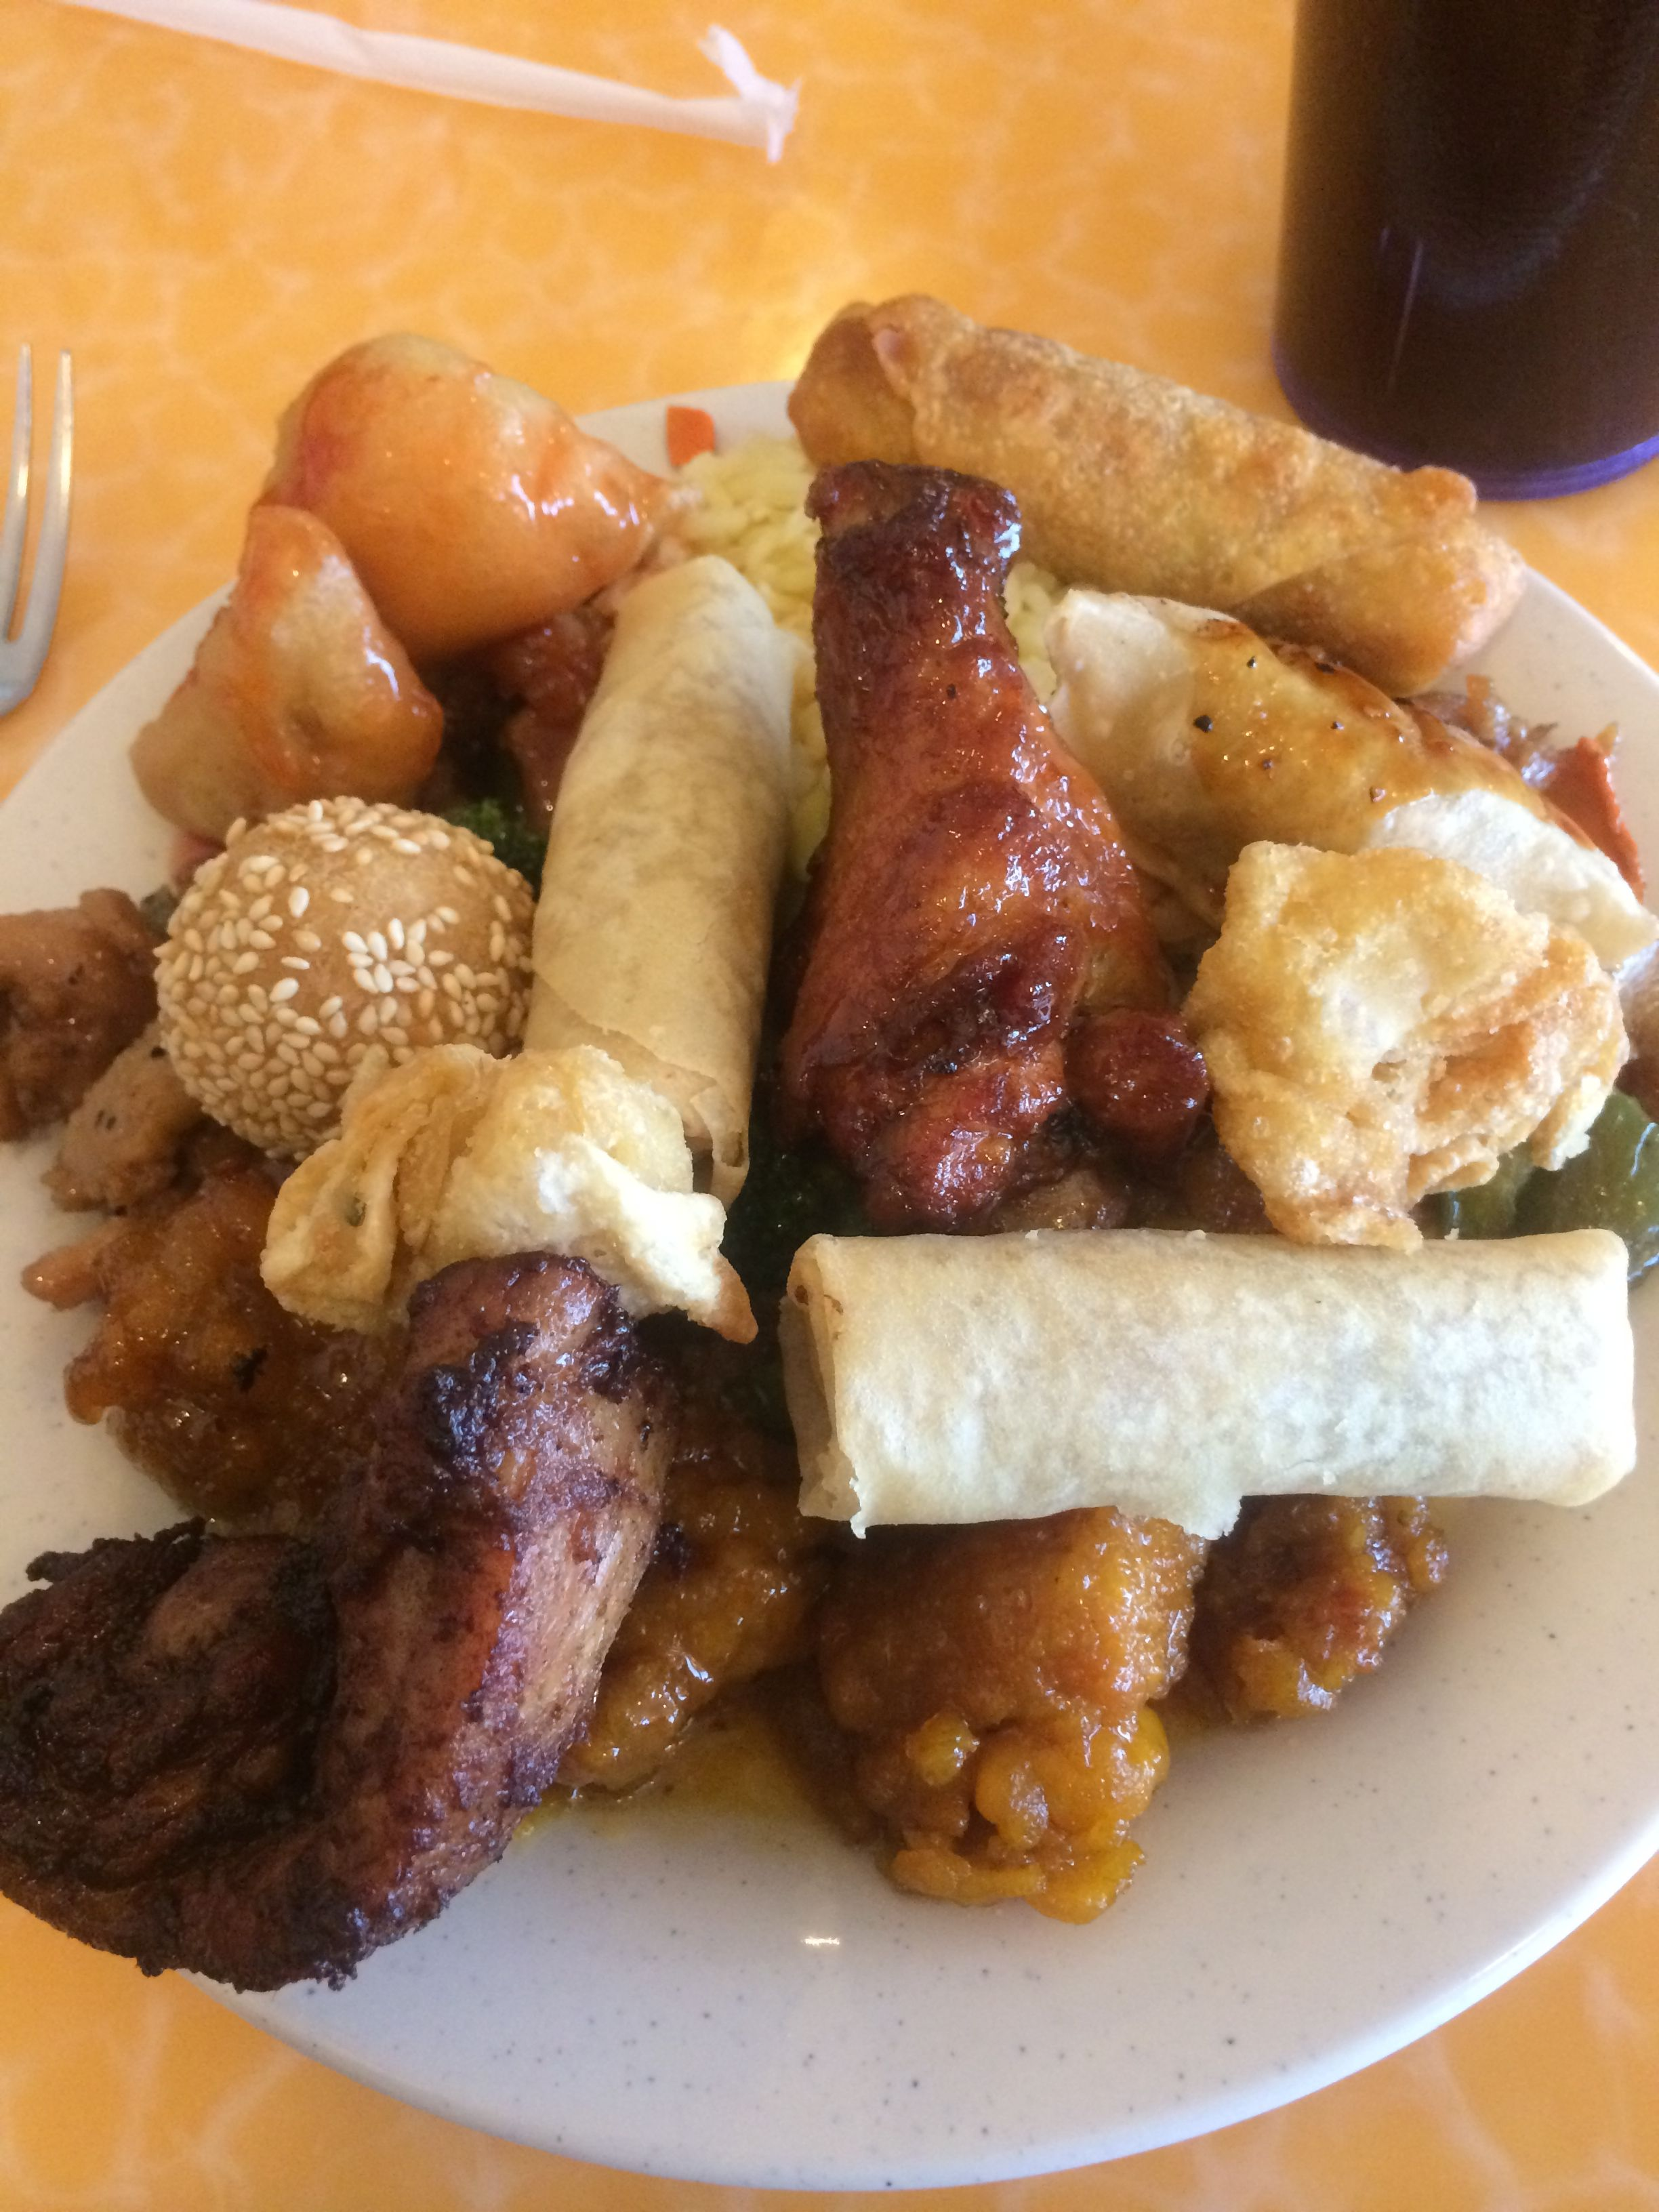 My Plate From Hitting Up The Buffet Line At New China Buffet In Norfolk Ne If You Want Lots Of Chinese Food That S The Place Food China Buffet Eat